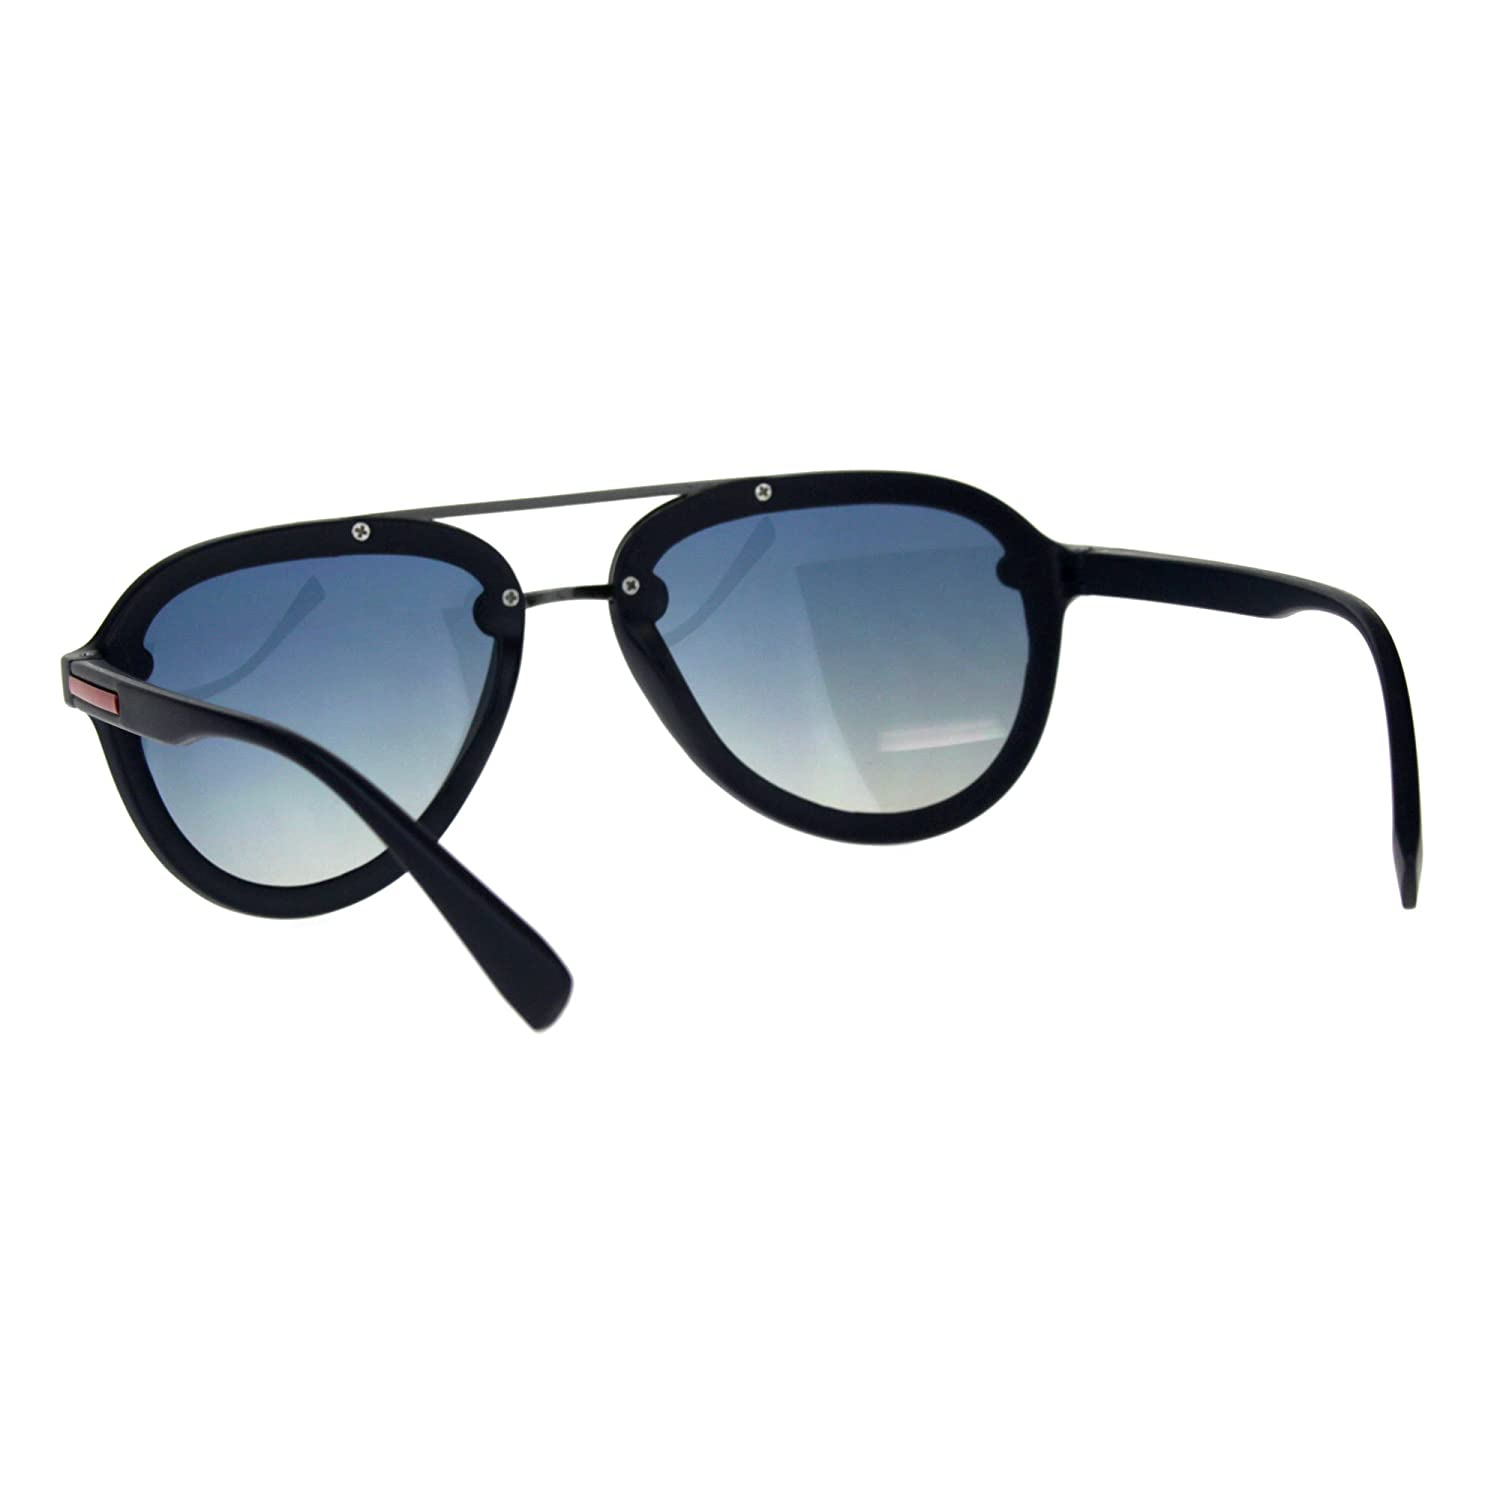 Exposed Edge Plastic Racer Mens Luxury Sunglasses